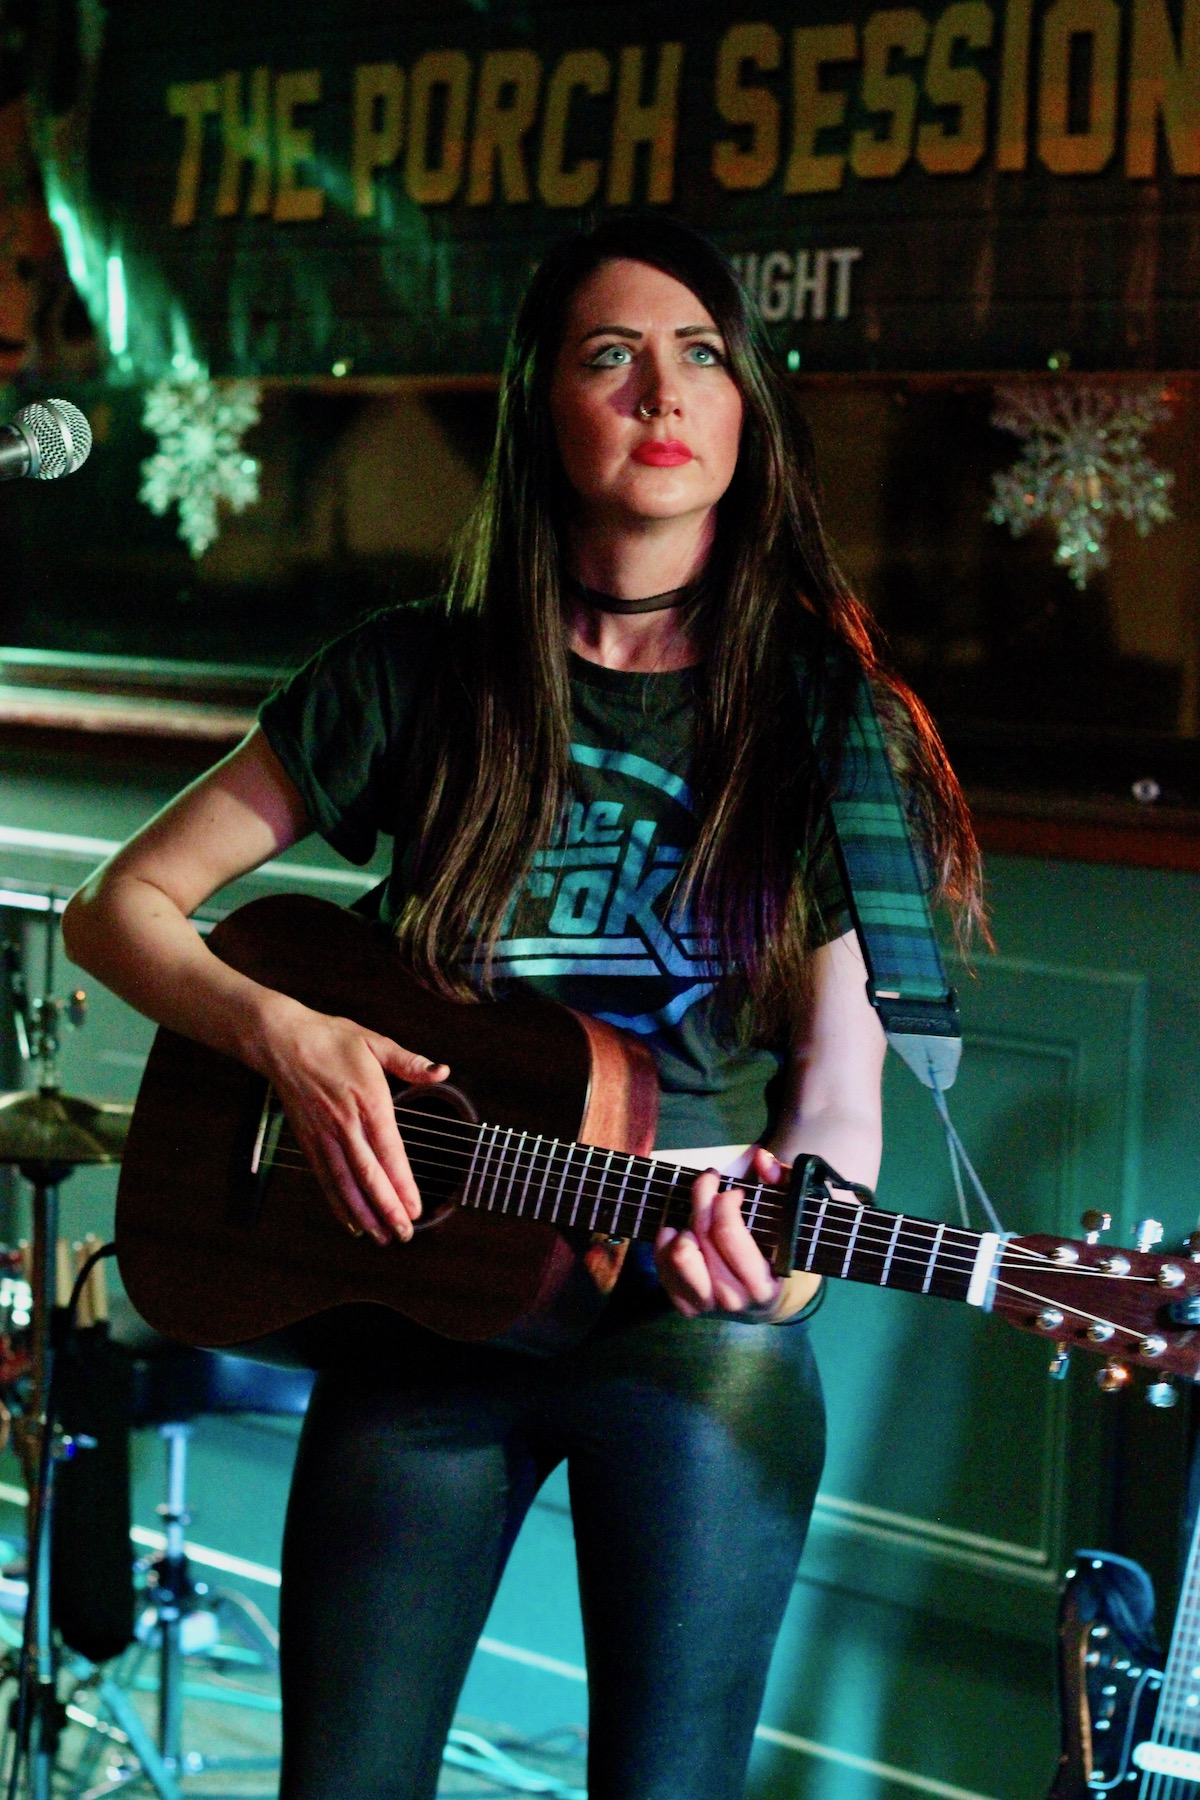 Lauren MacKenzie at The Porch Sessions Inverness December 20183001 - The Porch Sessions, 8/12/2018 - Images